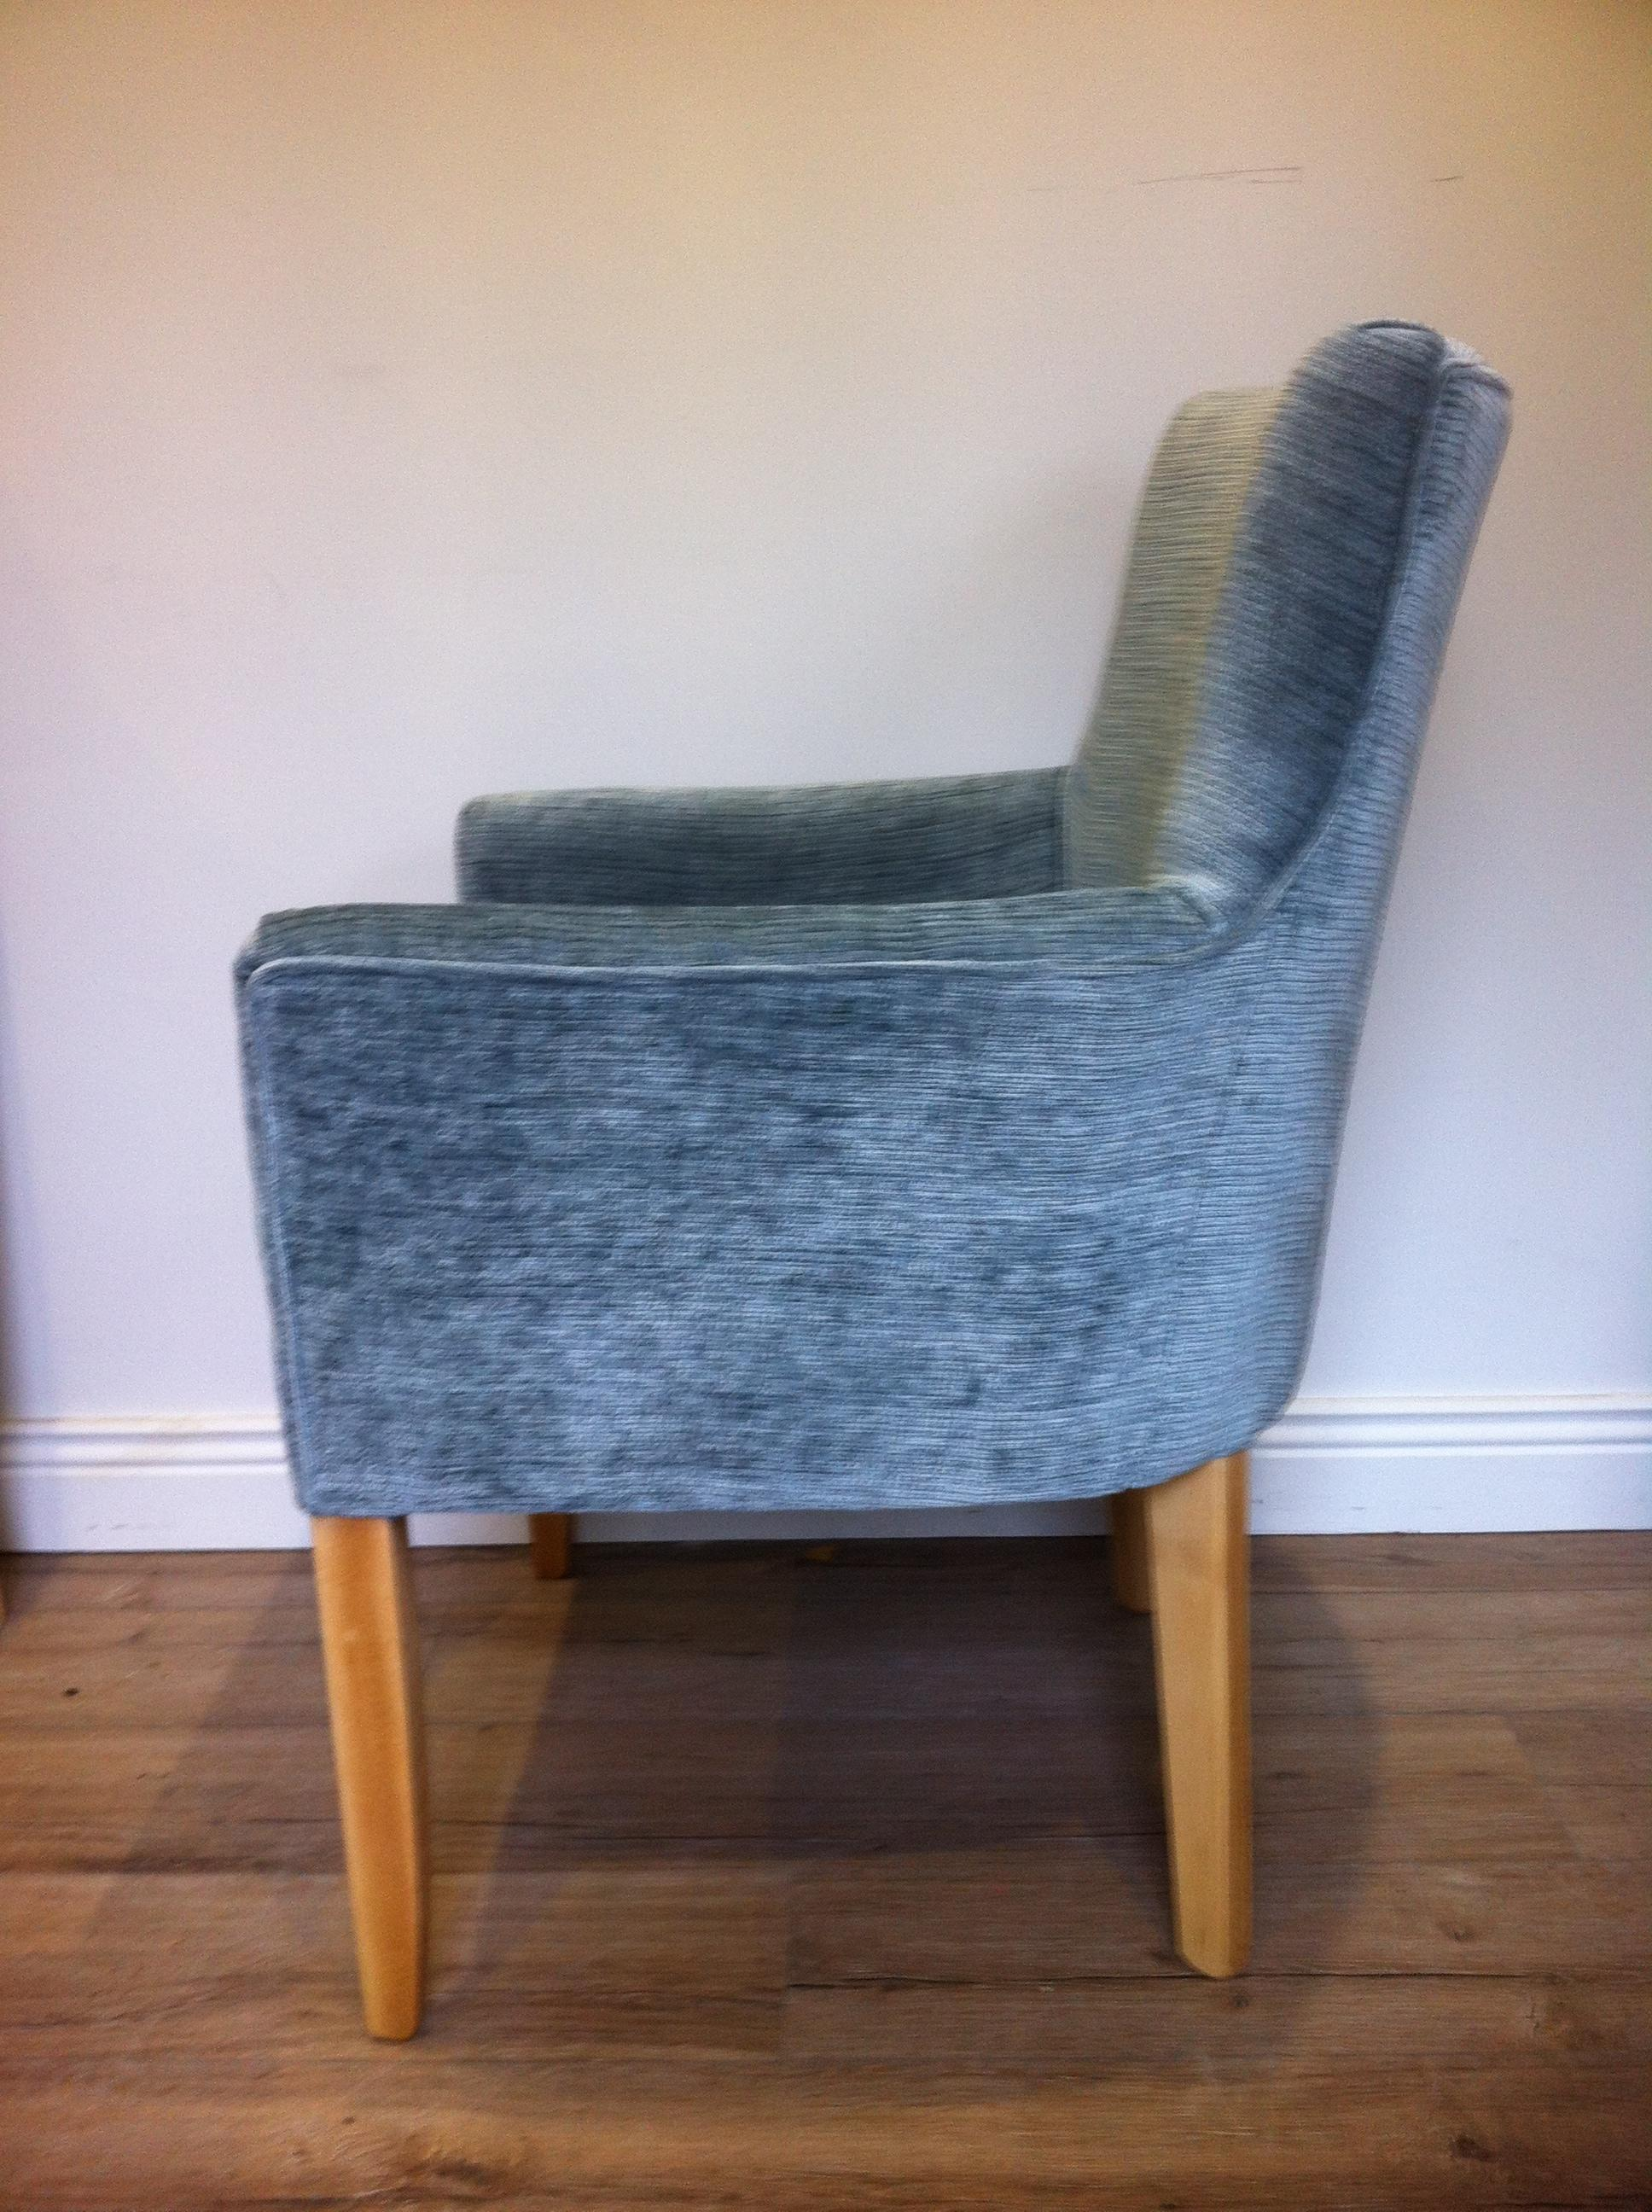 With a bespoke adjustment customer request for higher arms, (Fabric By Sanderson).